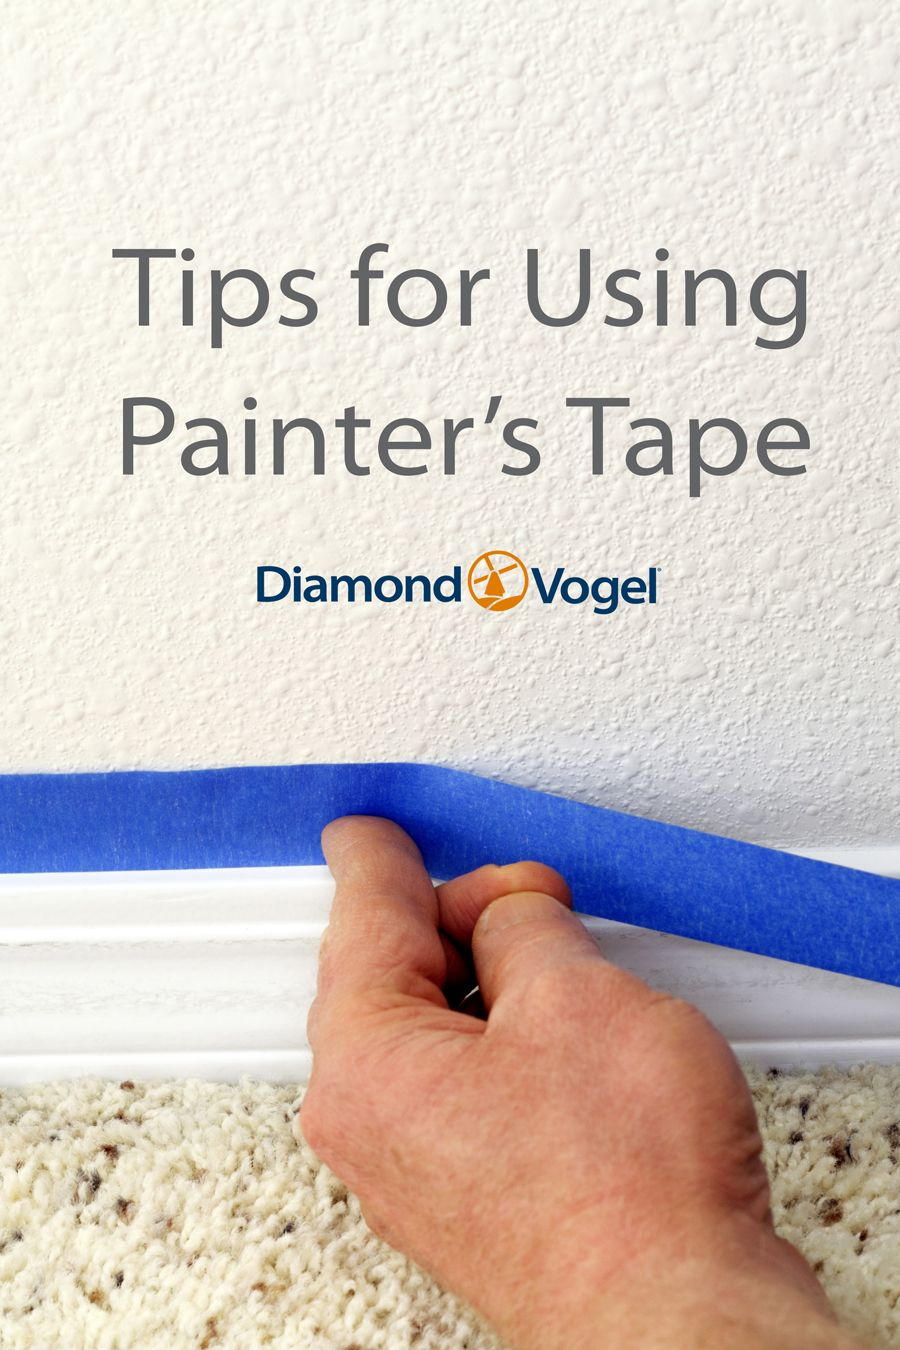 Not all painter's tape is created equal, of course. They